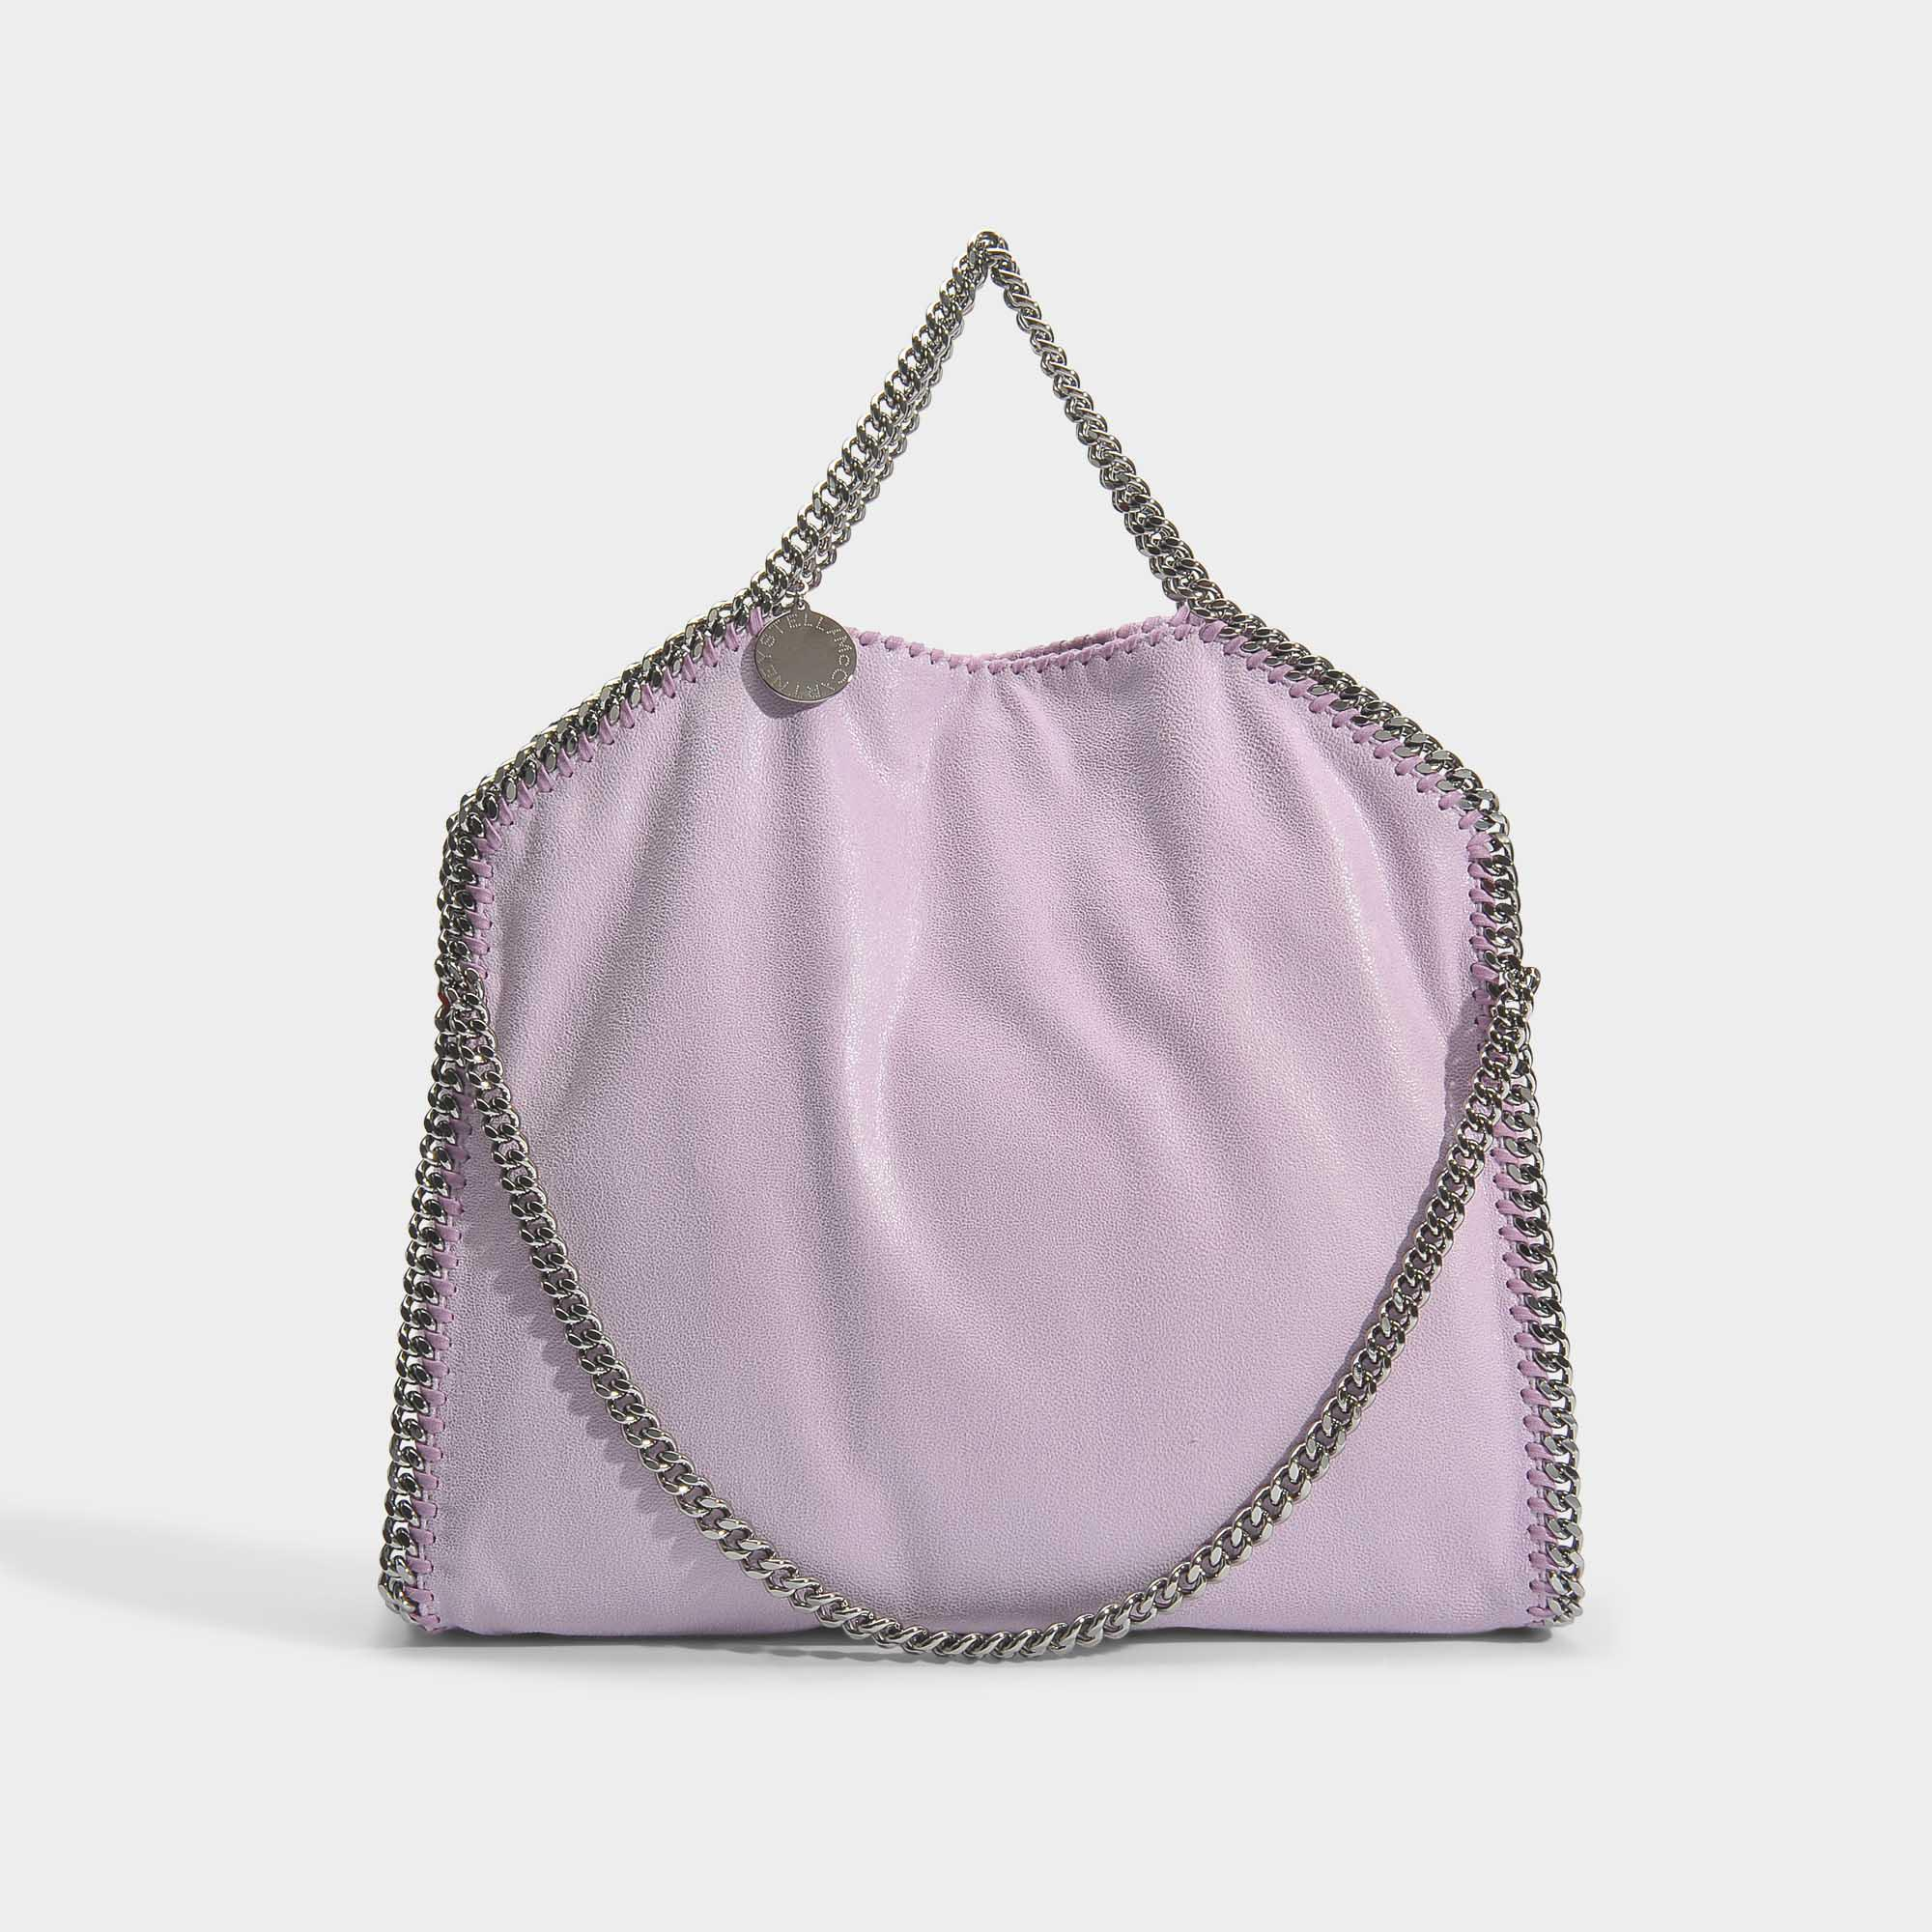 Lyst - Stella McCartney Shaggy Deer 3 Chain Falabella Bag In Lilac ... 03475cc752d55